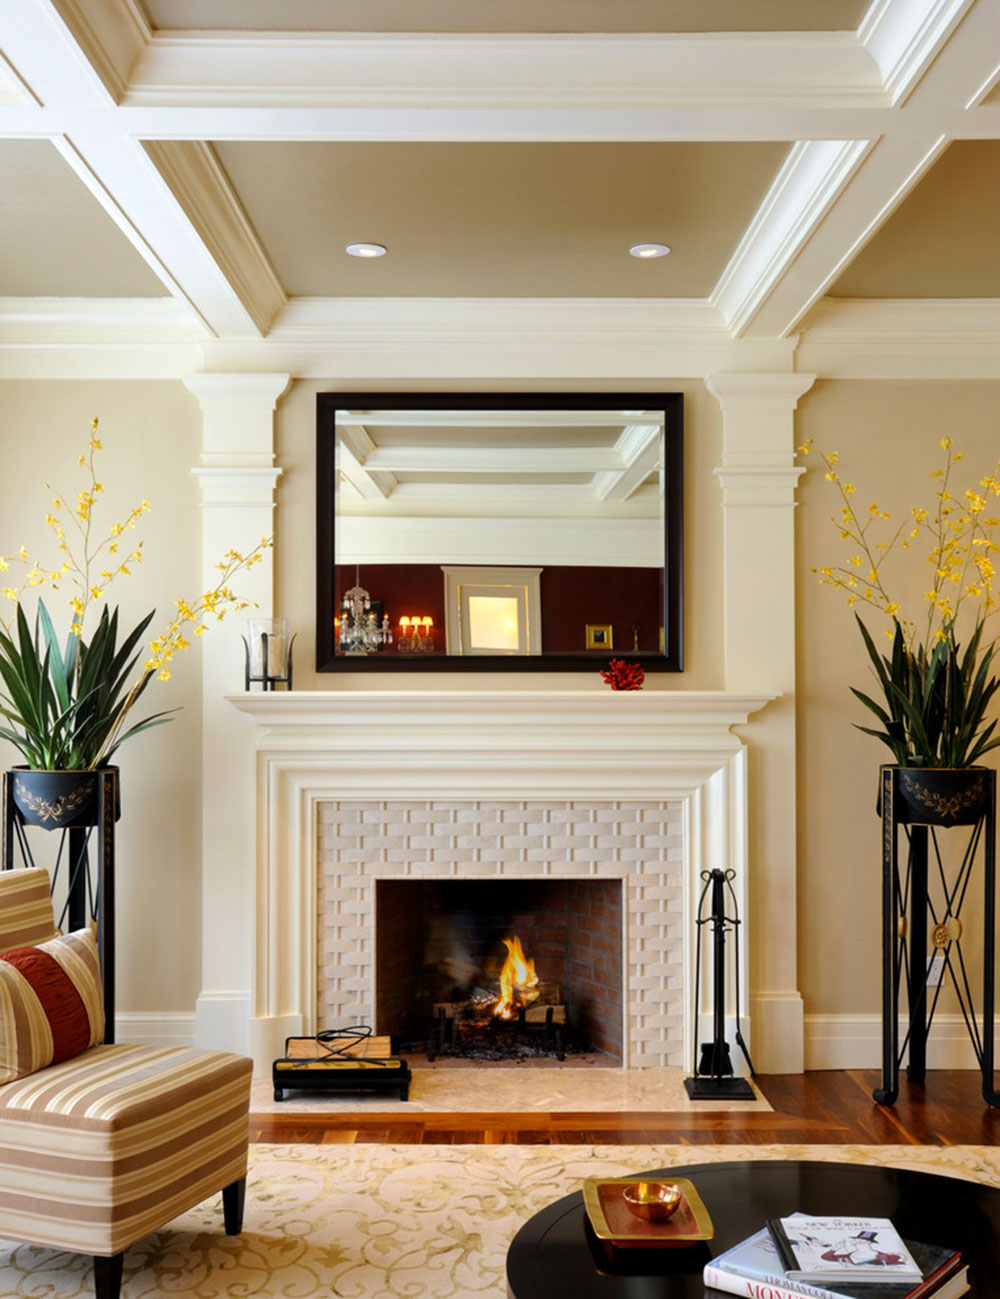 Contemporary Fireplace Surround For Warm Homes6 Modern Tile Ideas